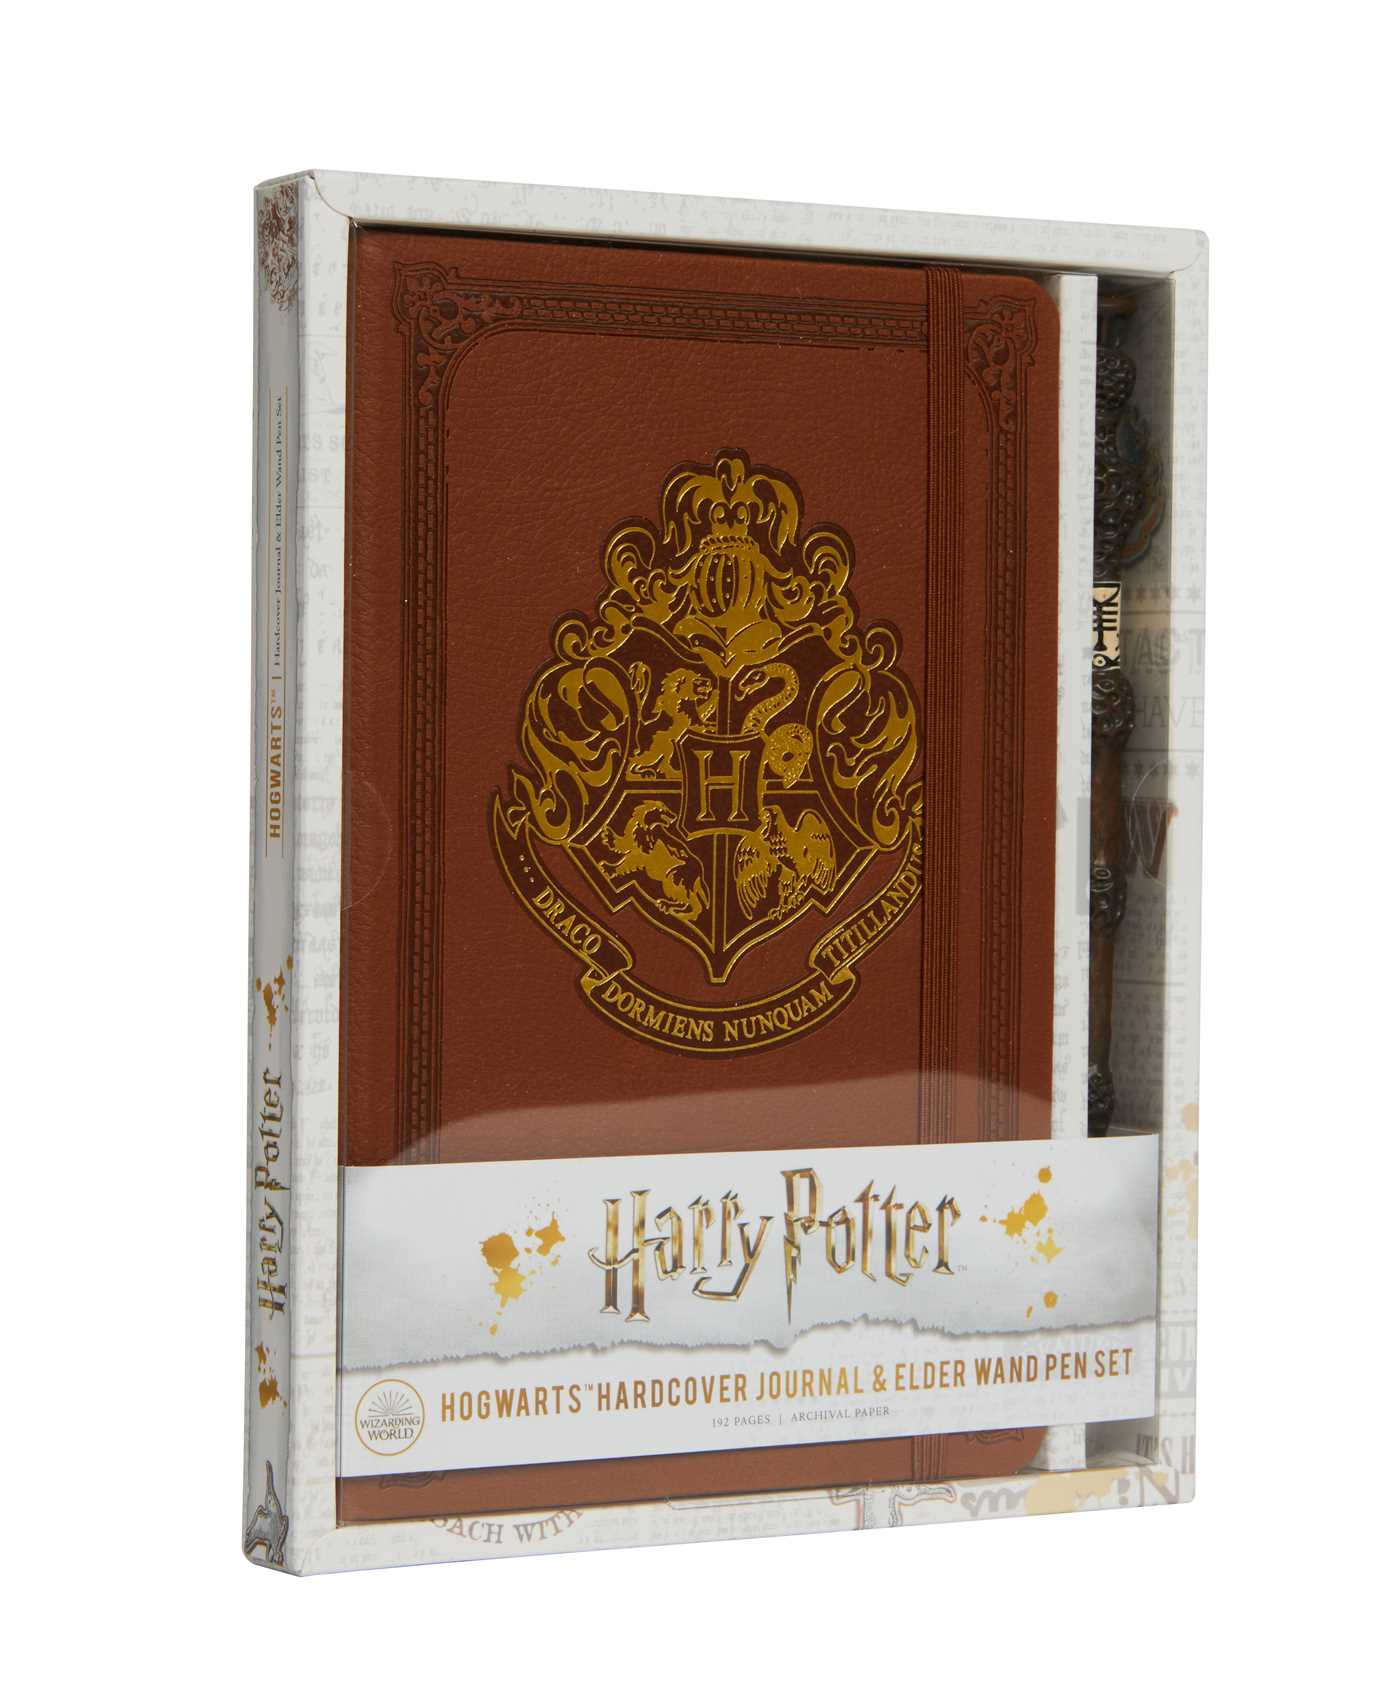 Harry Potter: Hogwarts Hardcover Journal and Elder Wand Pen Set | Papeterie fine